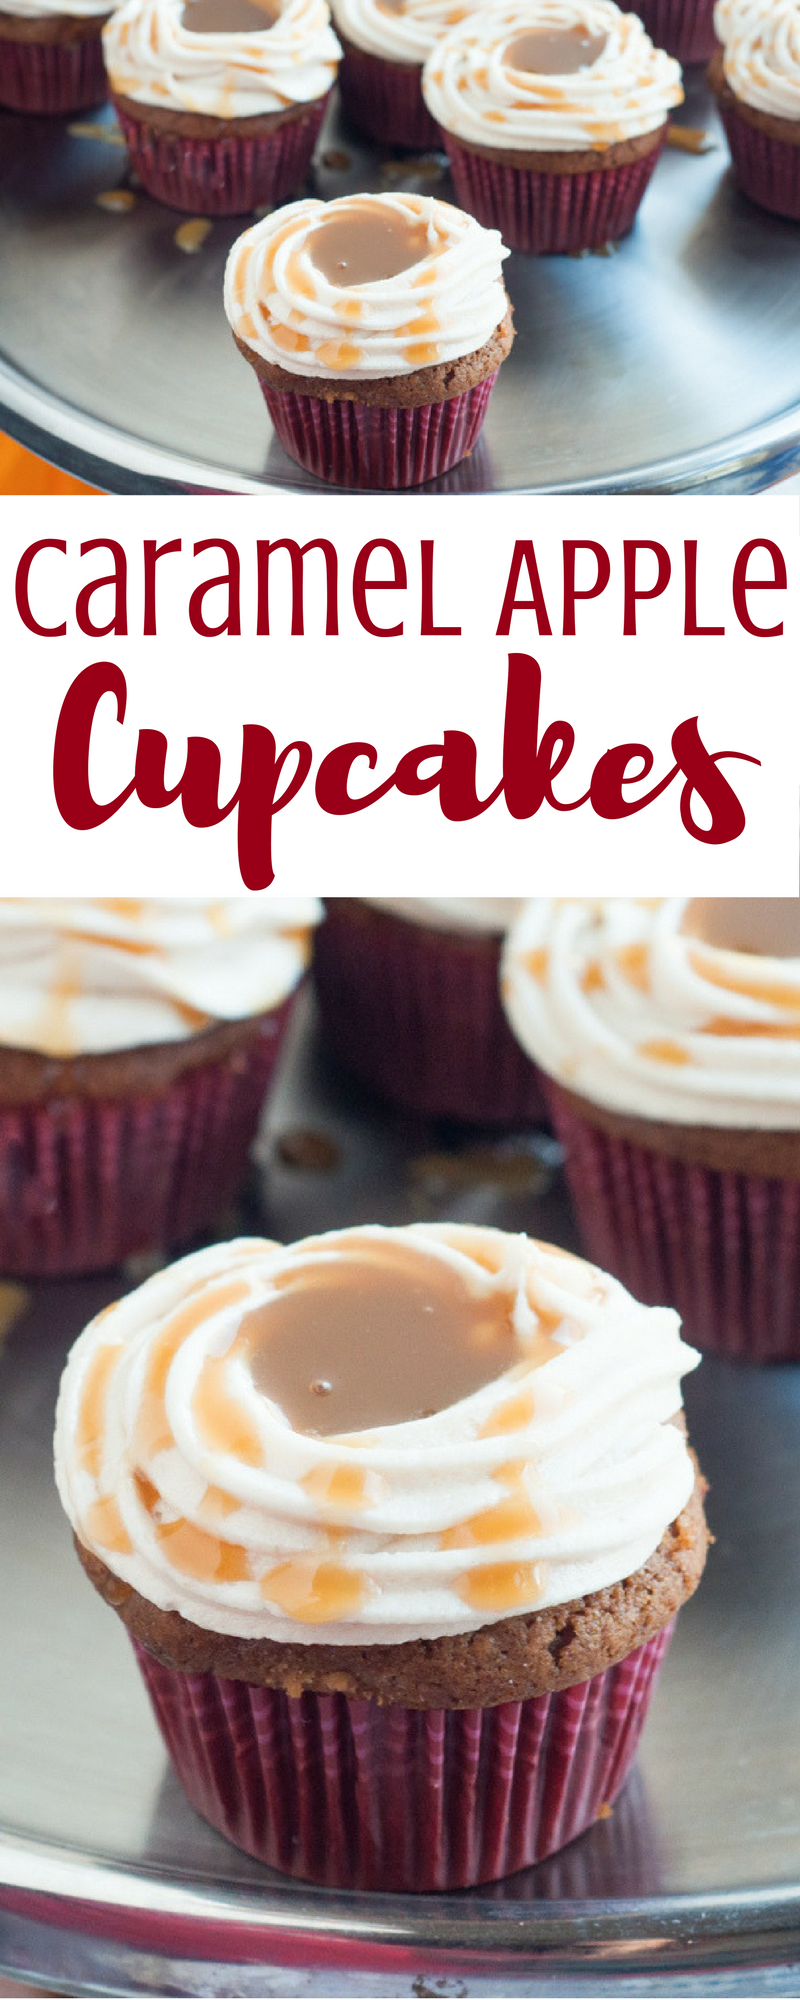 Love Caramel Apples? Then you'll love these delicious Caramel Apple Cupcakes featuring your favorite fall flavors! Get the recipe.